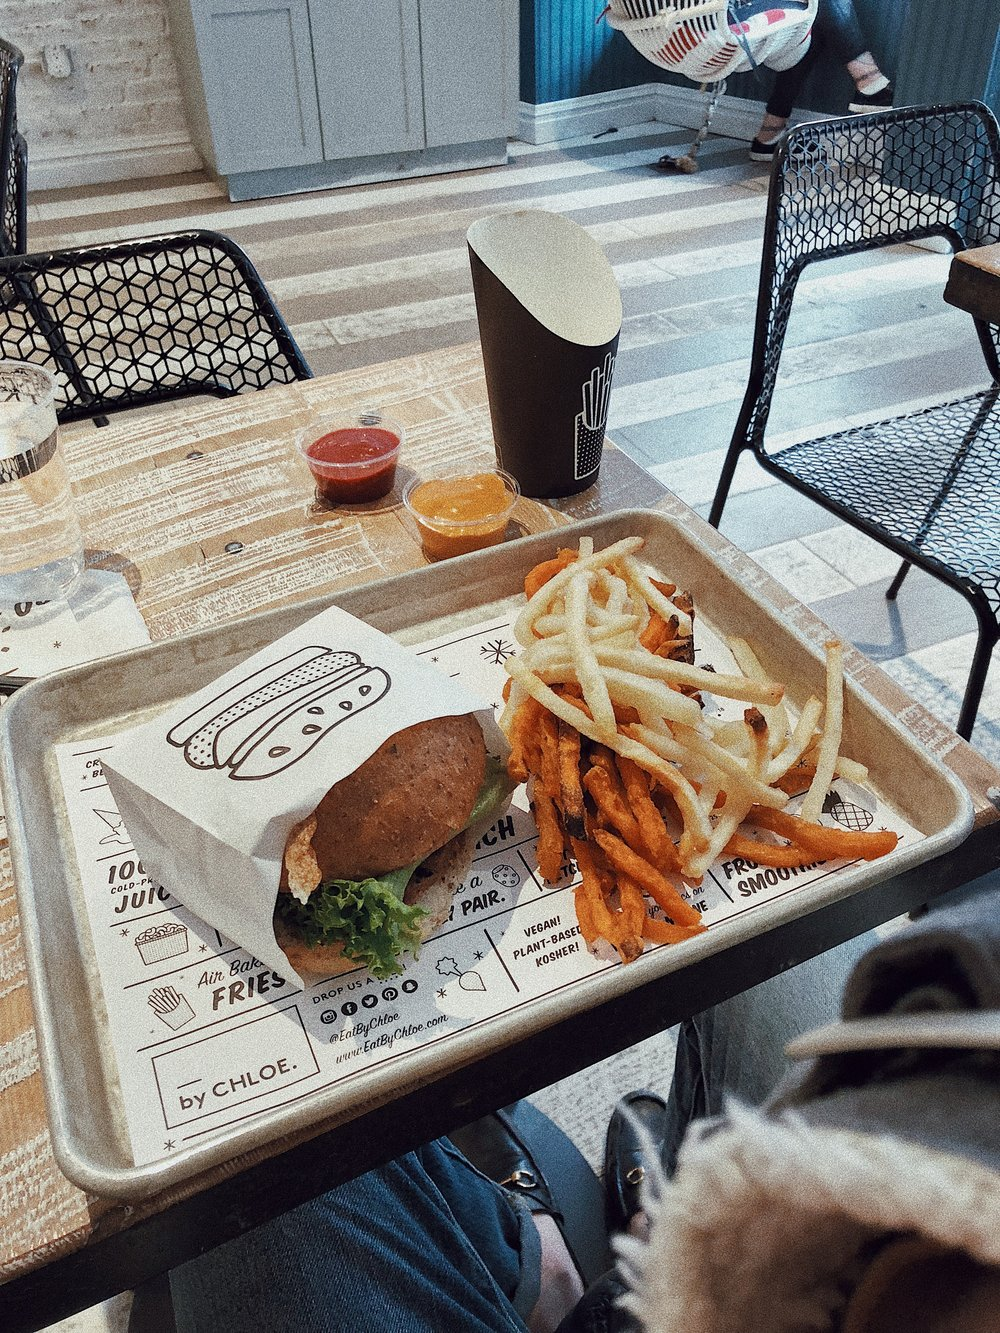 By Chloe is one of my favorite places to stop and get a bite in Soho. It fills me up like no other food and it's fairly healthy. The fries are air fried and the food is vegan. I 10/10 recommend this spot if you're looking to try something new.